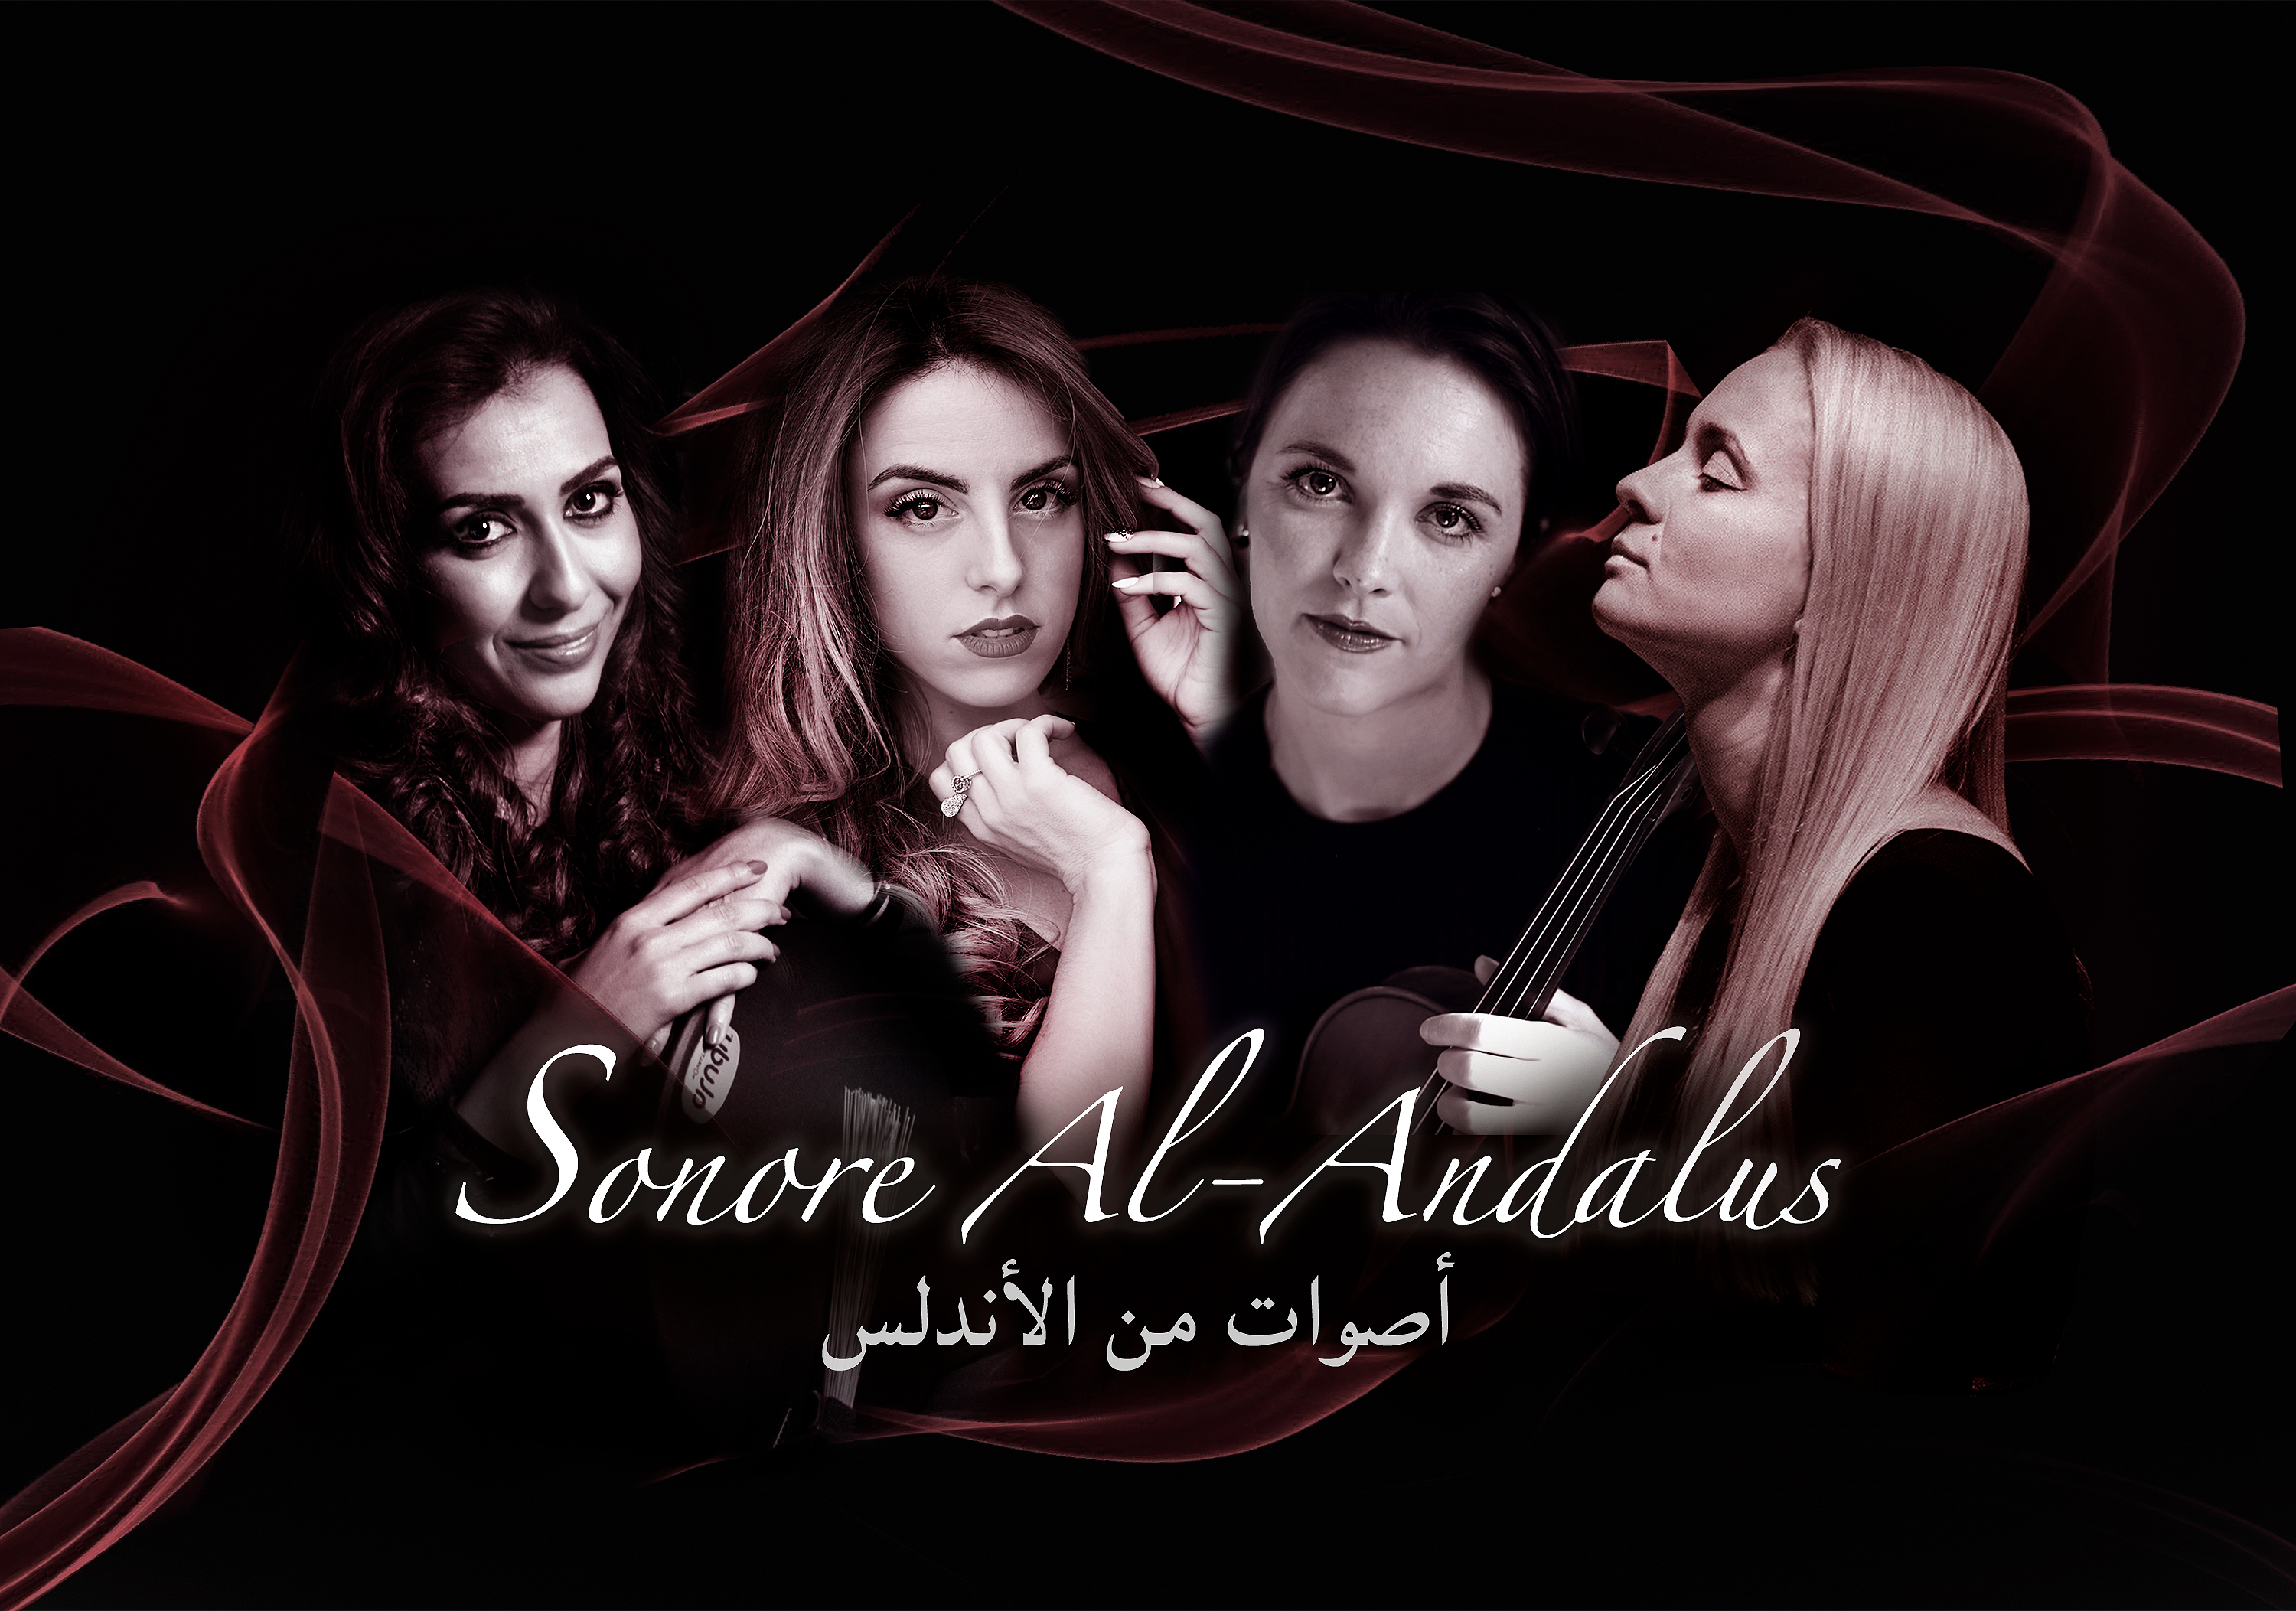 Sonore Al-Andalus